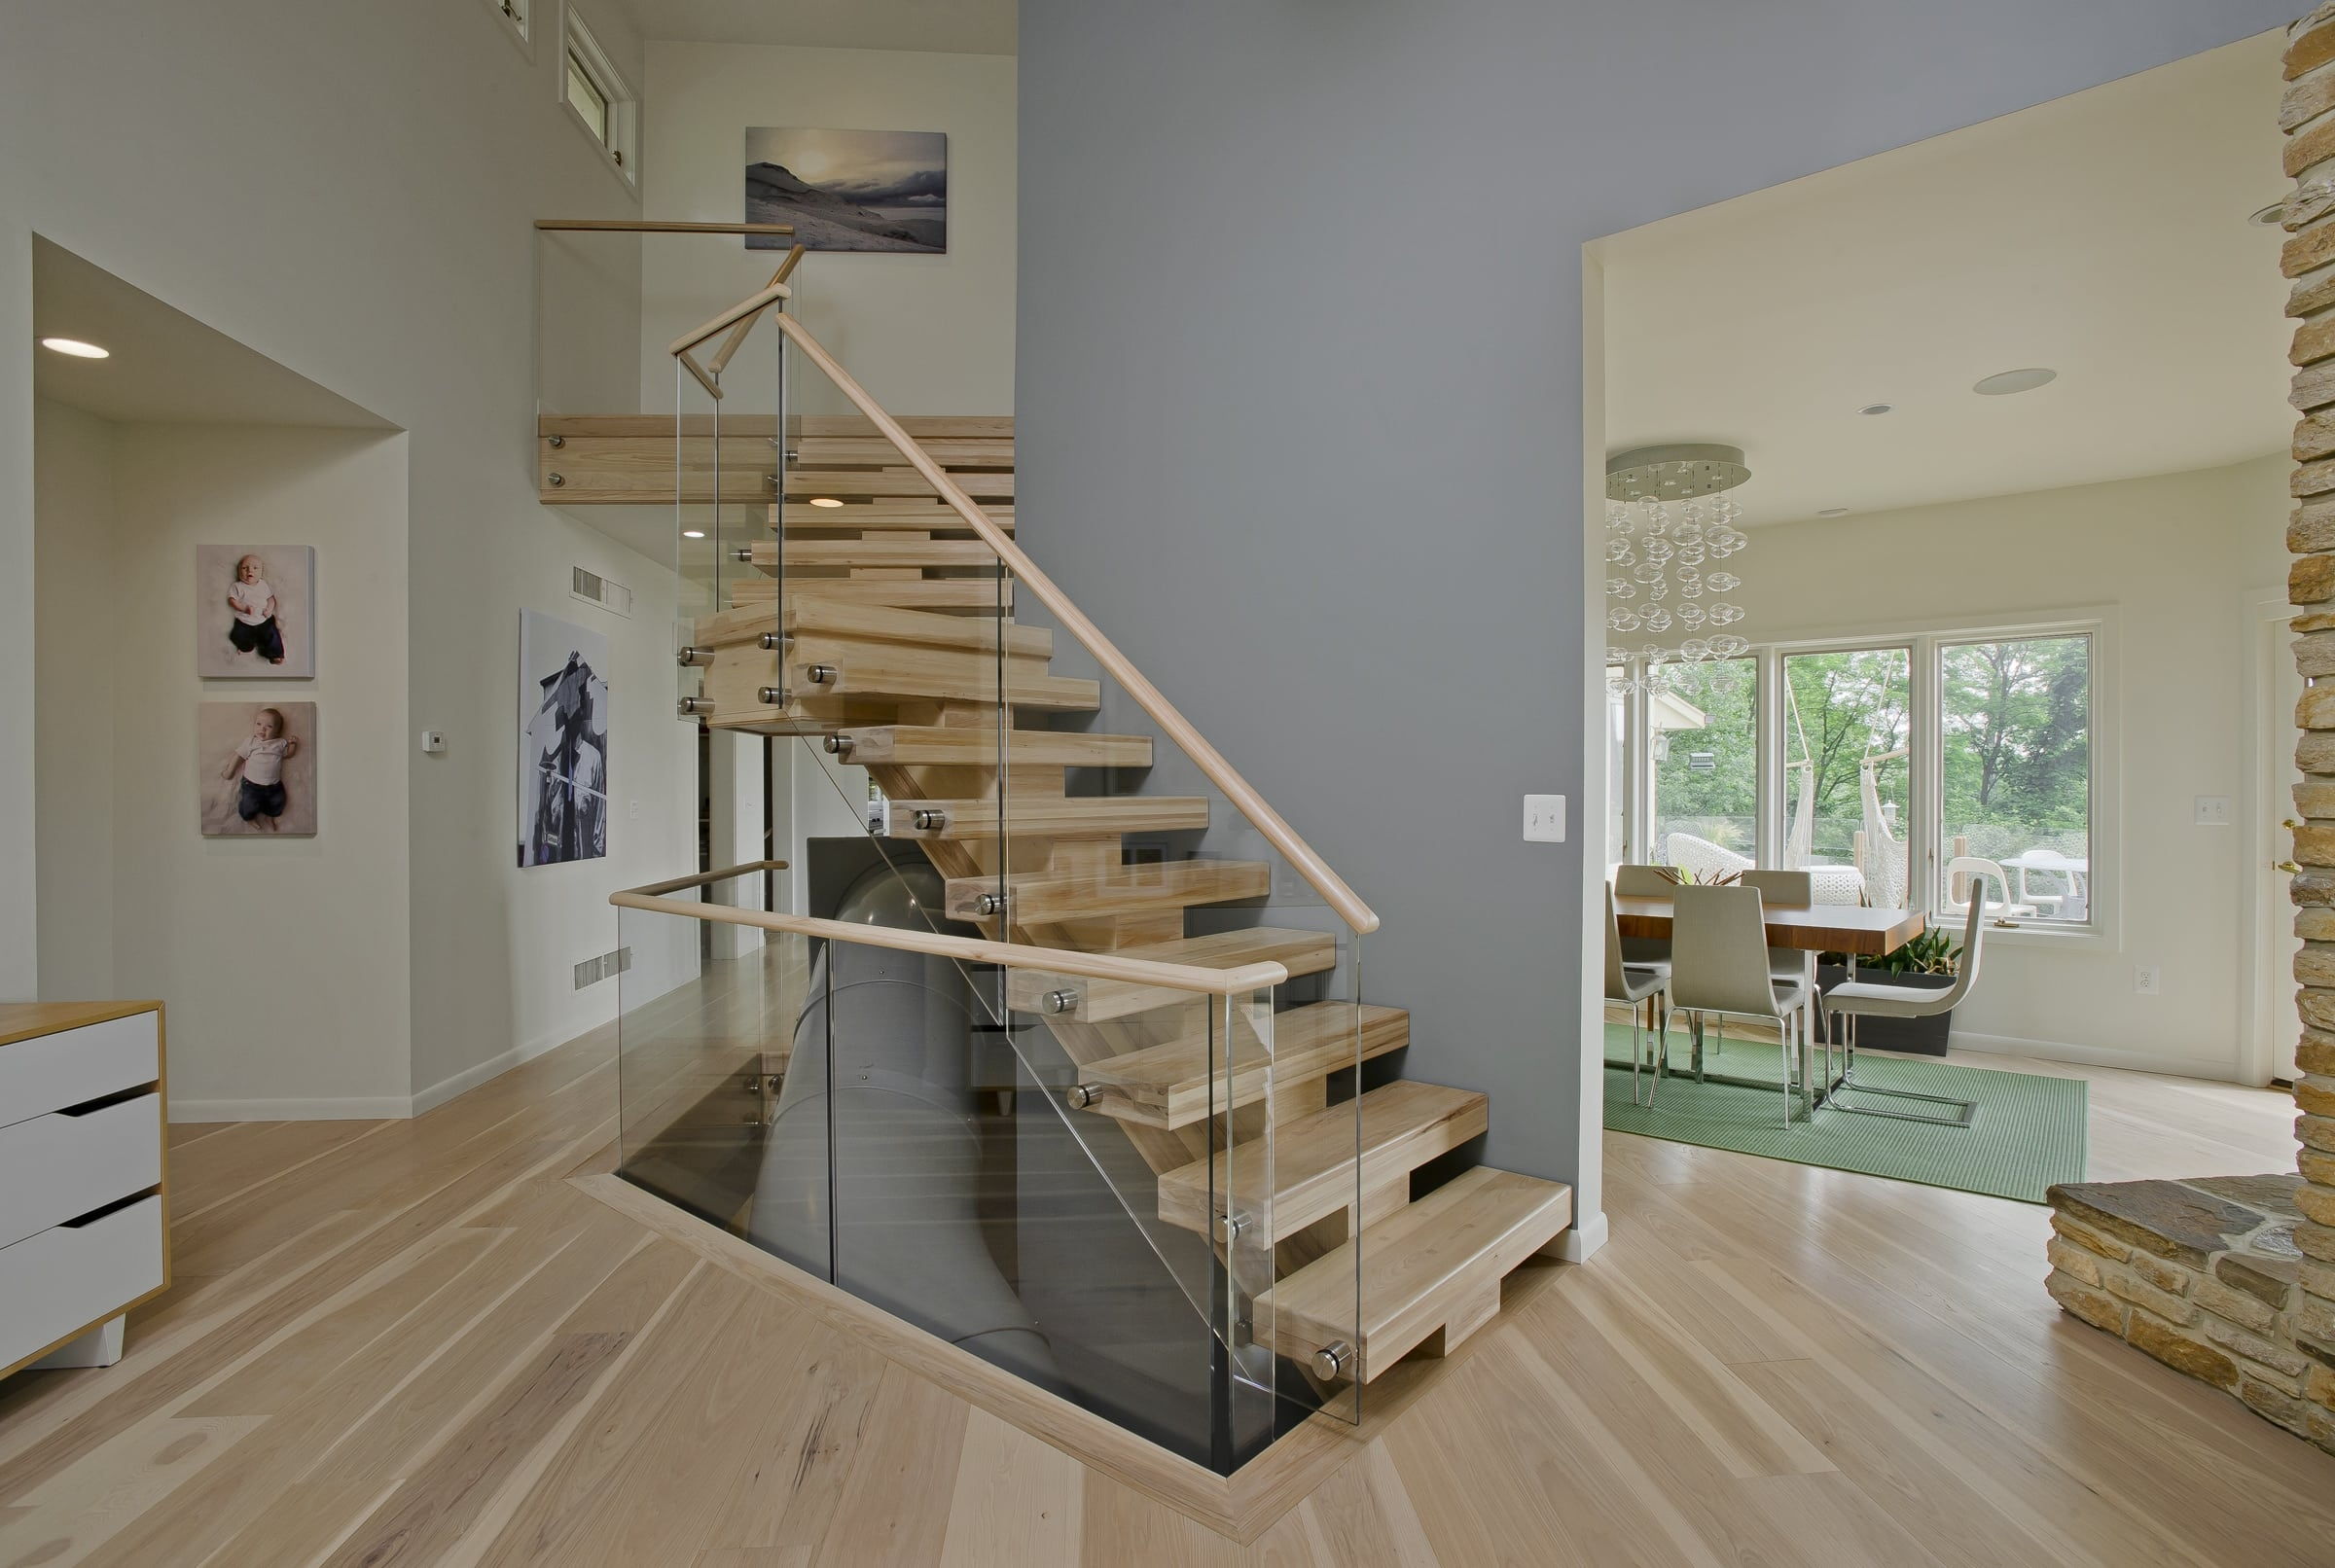 Floating Staircase Cost Design Ideas Owings Brothers Contracting | Designs Of Stairs Inside House | Interior | 2Nd Floor | Duplex | Recent | House Indoor